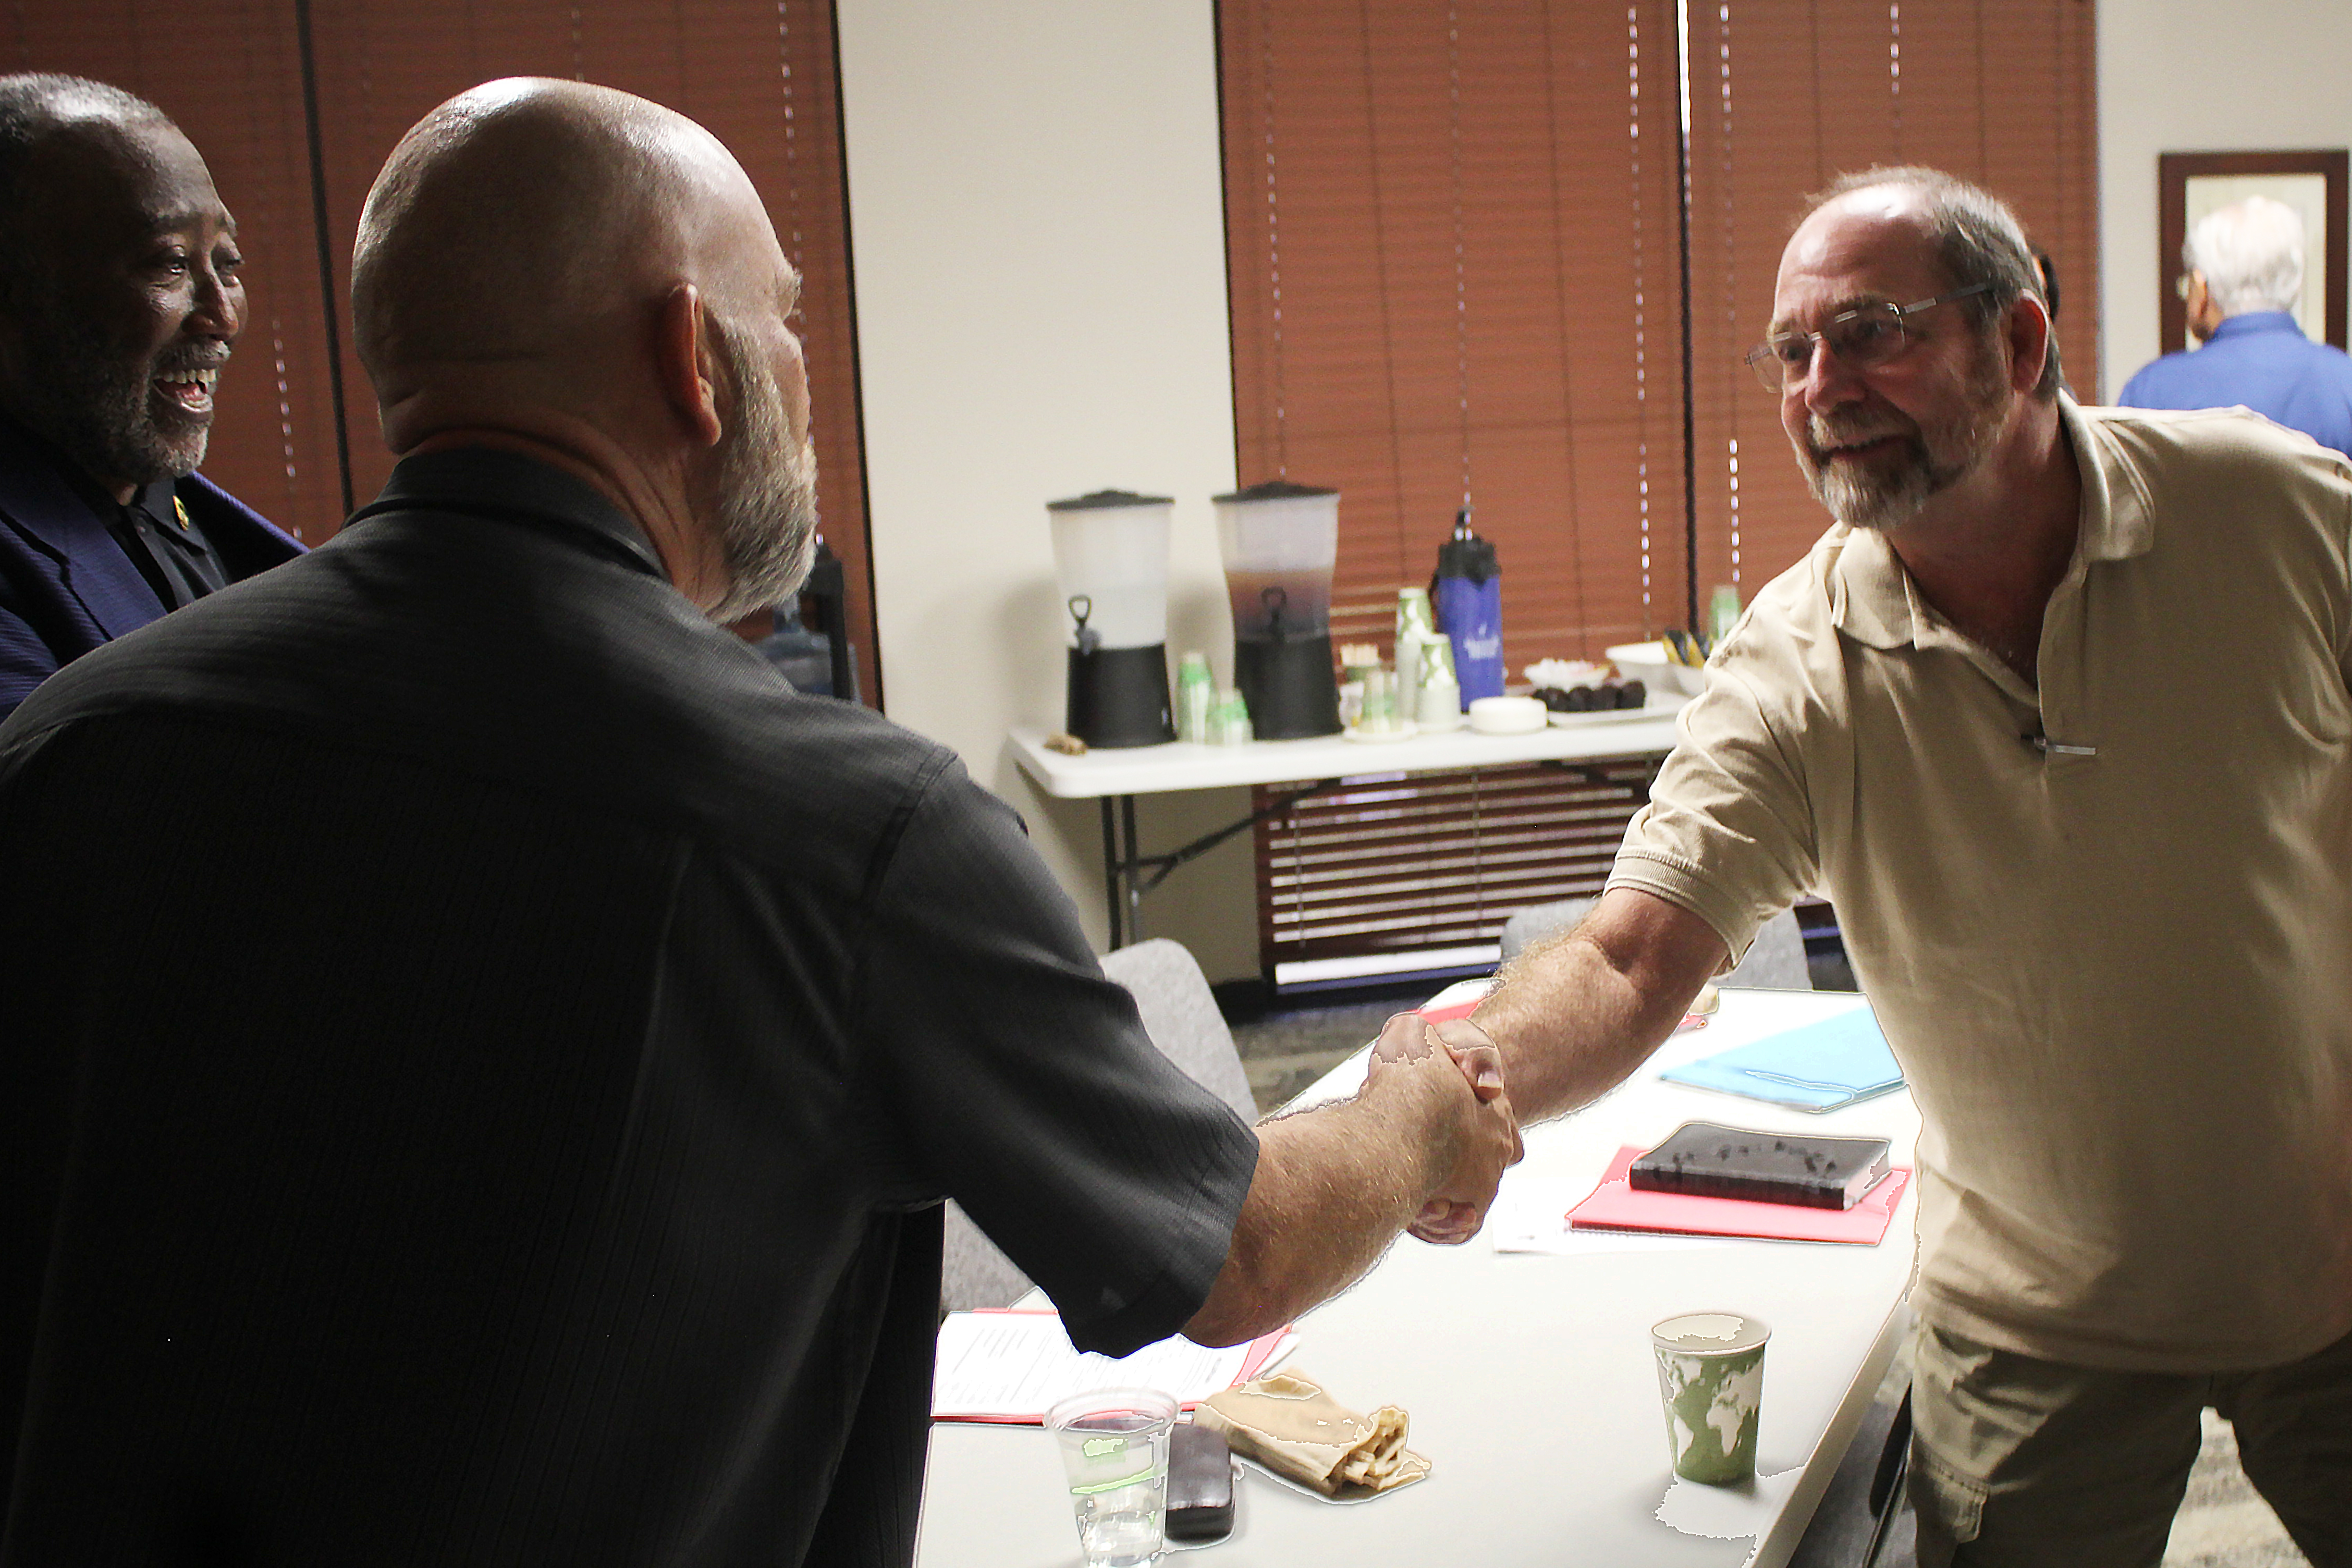 Mark George (right), a chaplain at the Caldwell County Jail in Lockhart, TX., shakes hands with VA clergy training instructor Larry Collins, while attendee Vernon Cooper looks on.